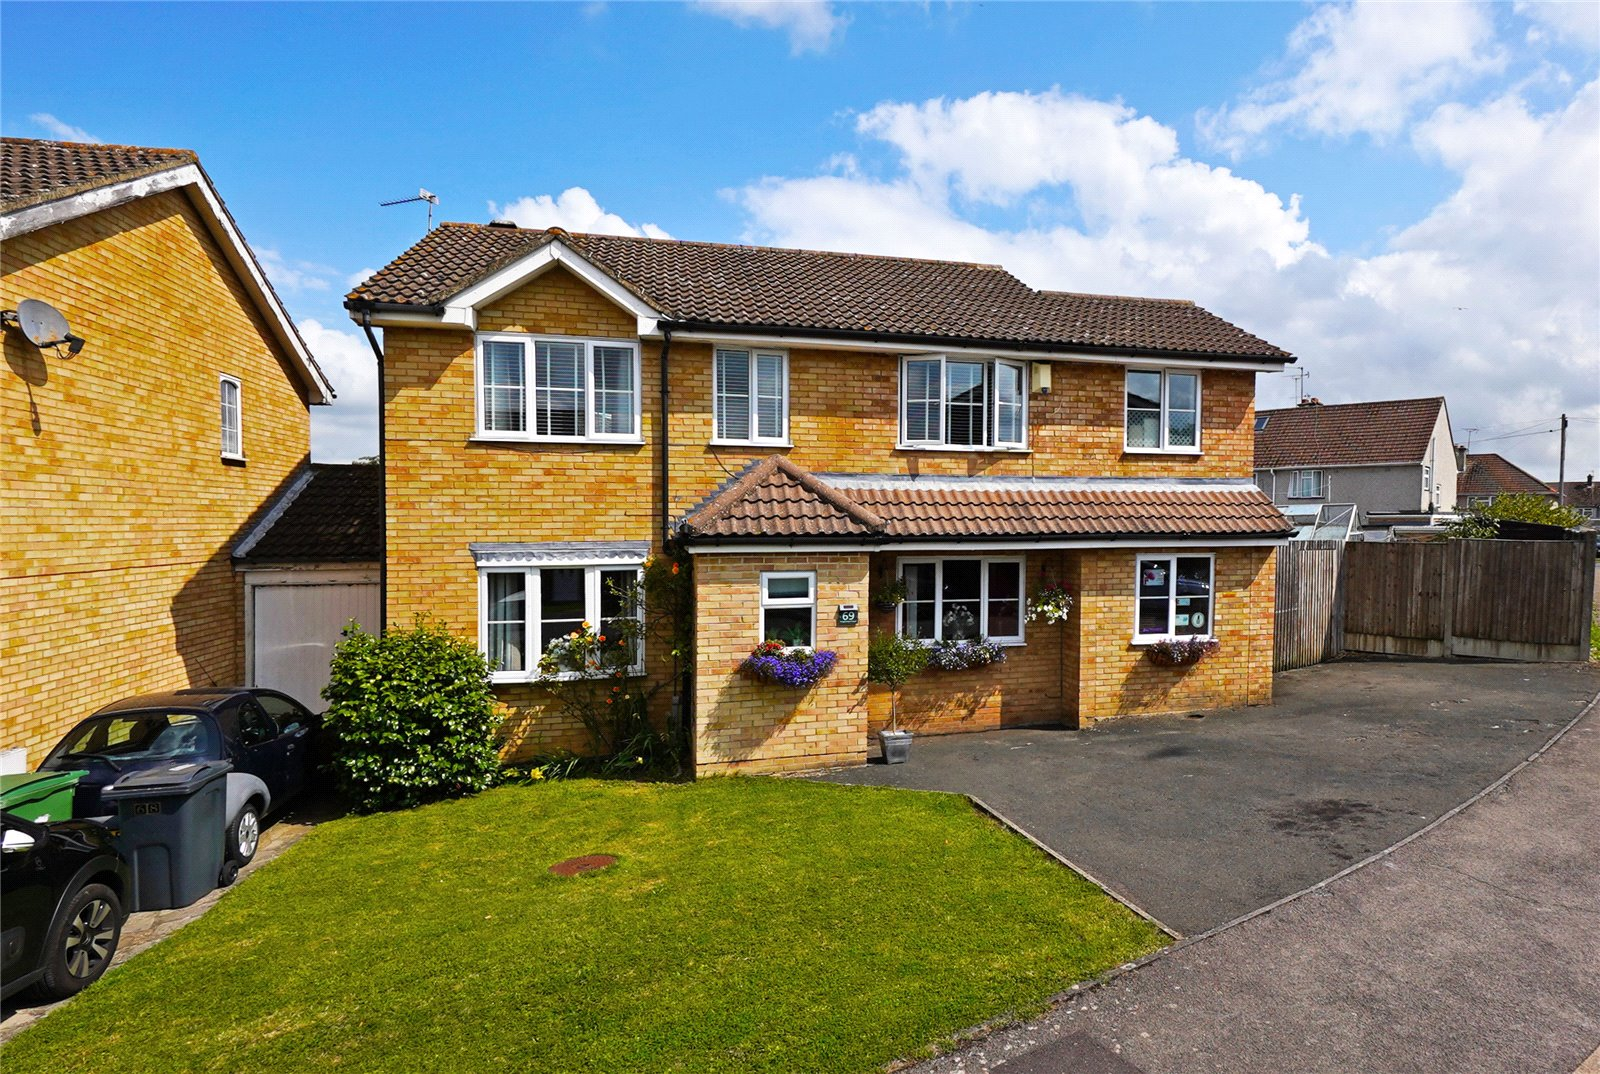 5 bed house for sale in Finglesham Court, Maidstone, ME15